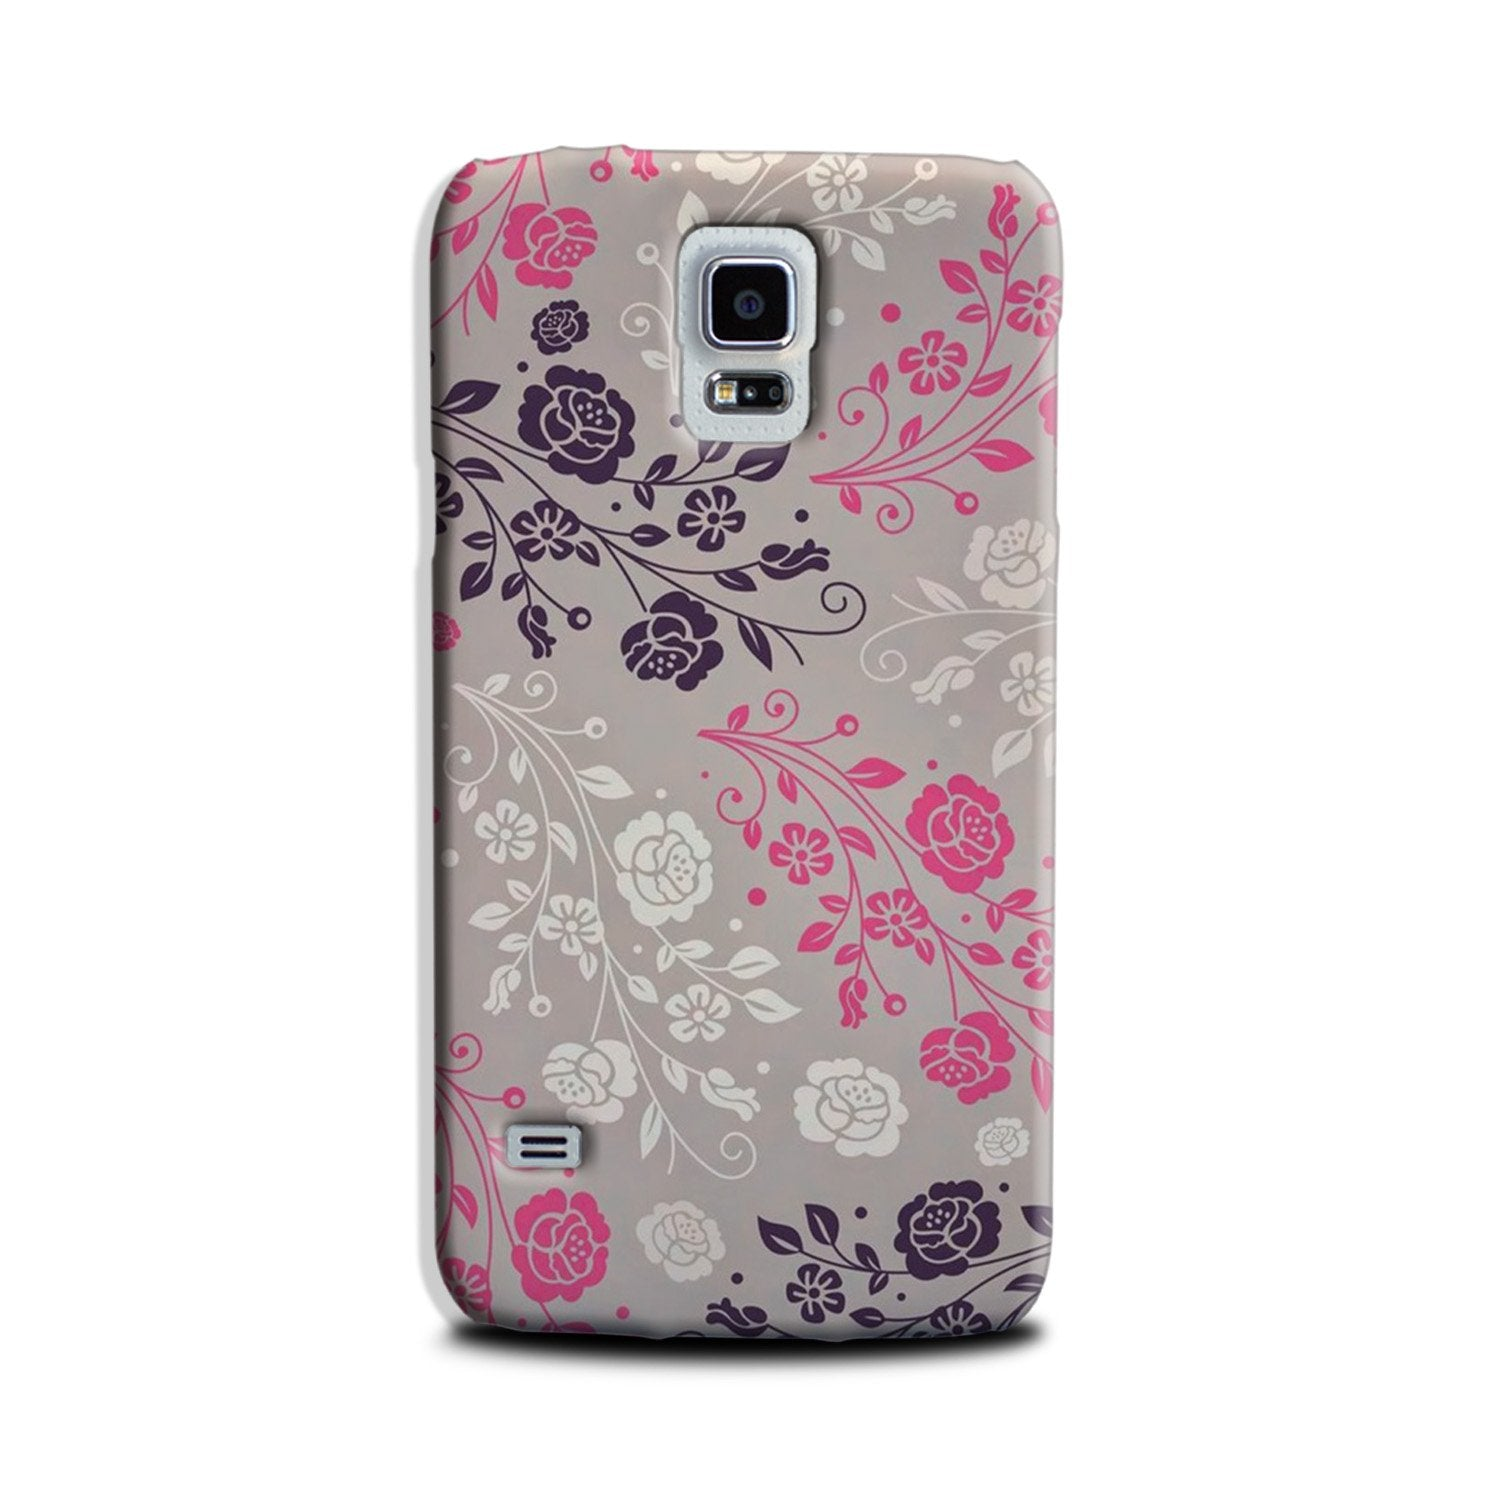 Pattern2 Case for Galaxy S5